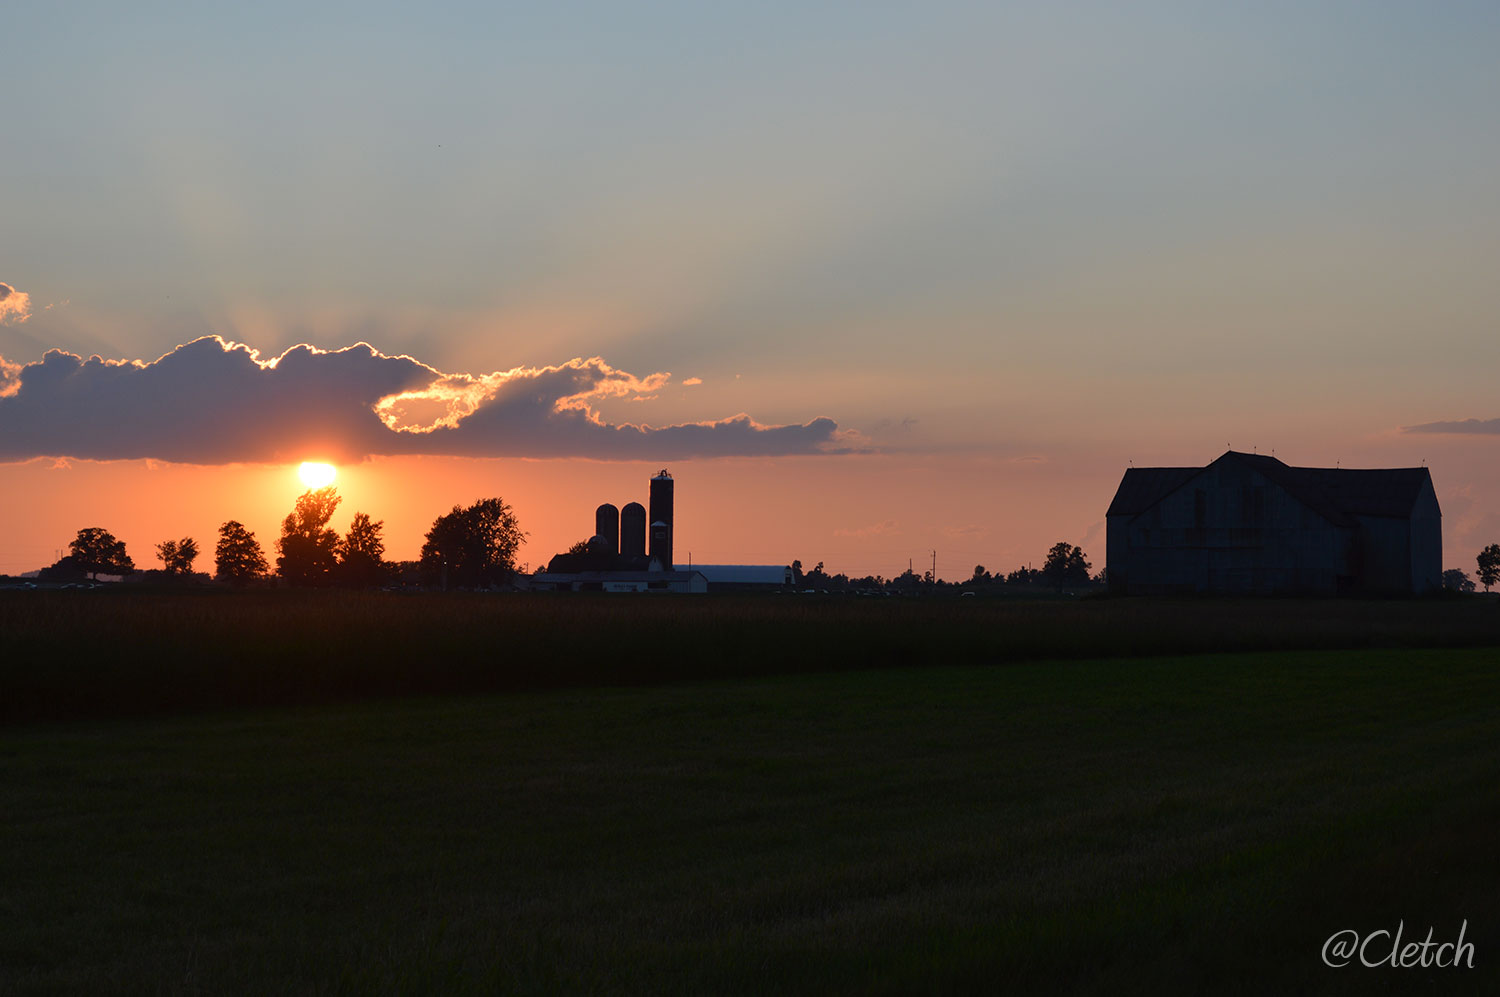 Sunset near the Simpson homestead